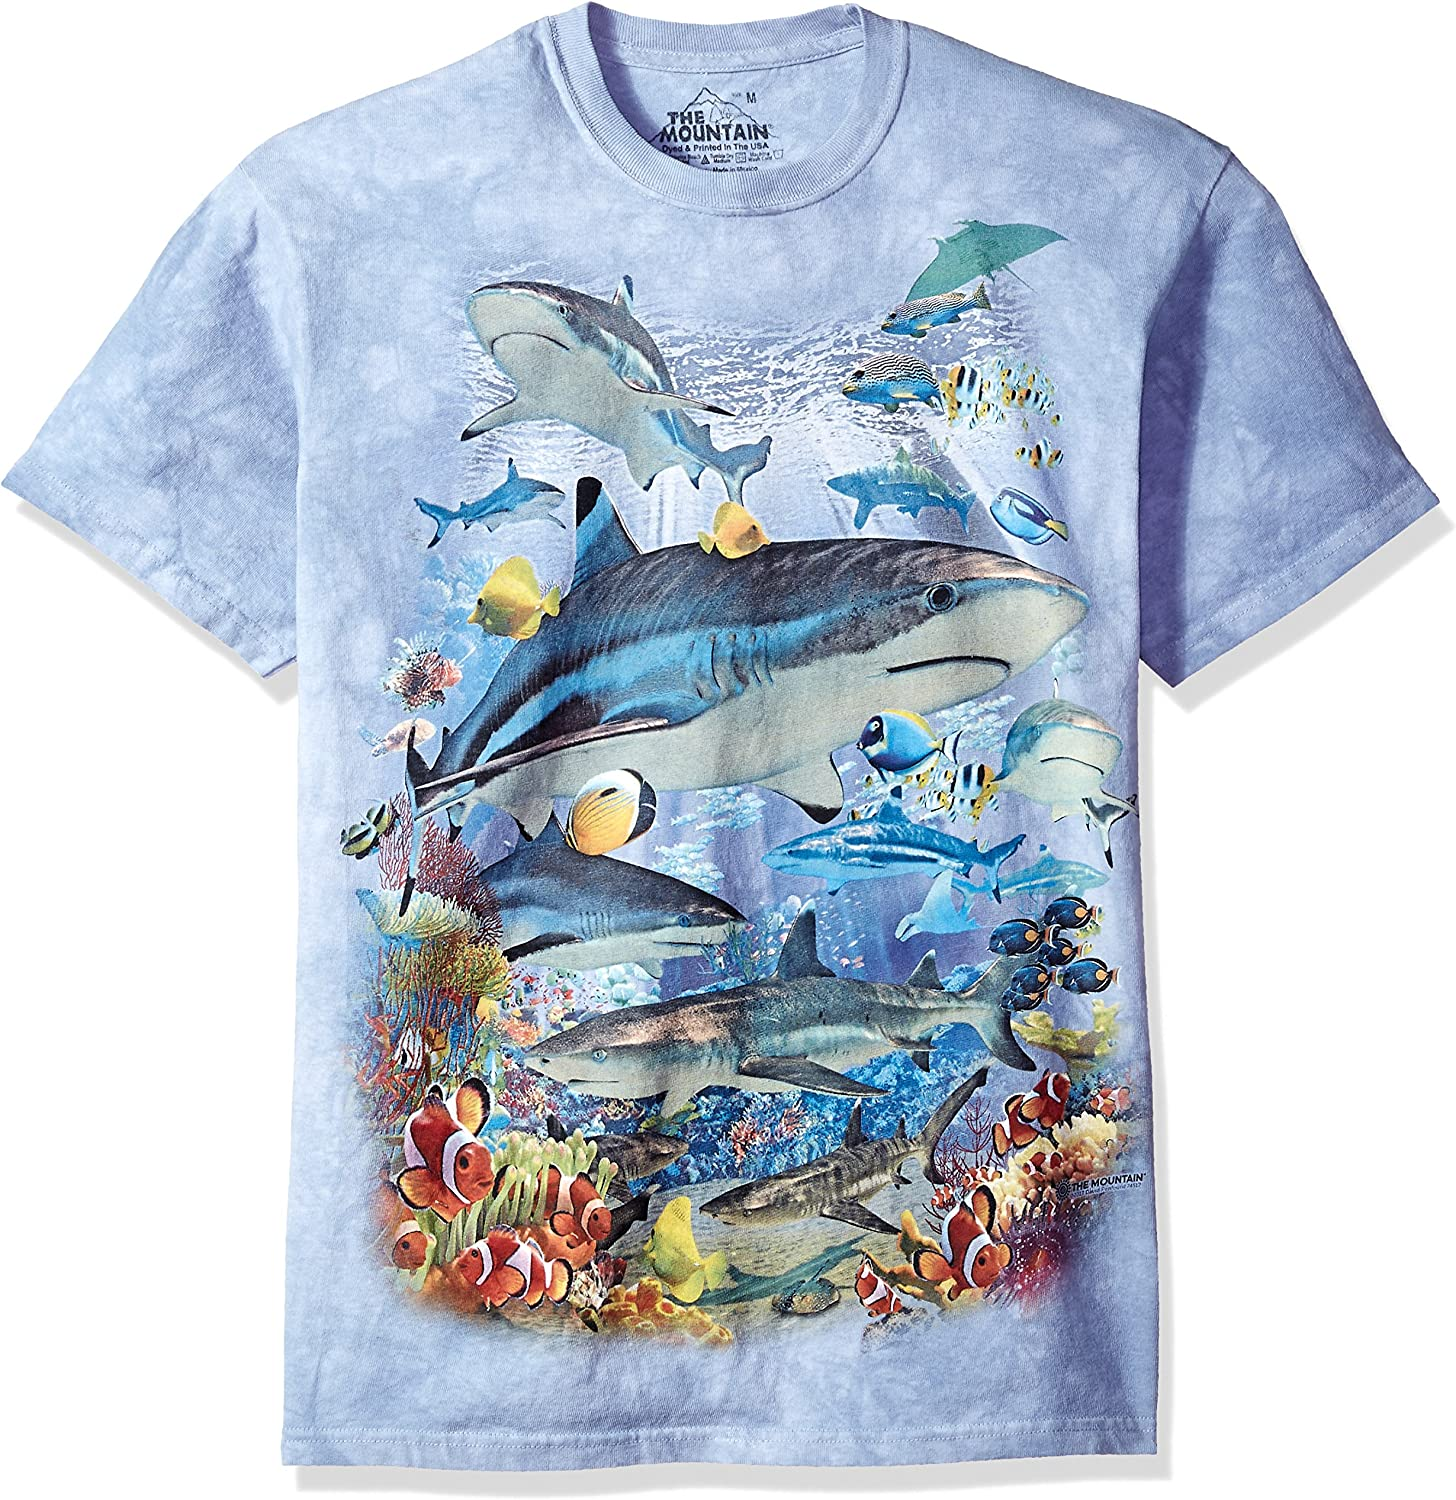 The Mountain Men's Reef Sharks Tee